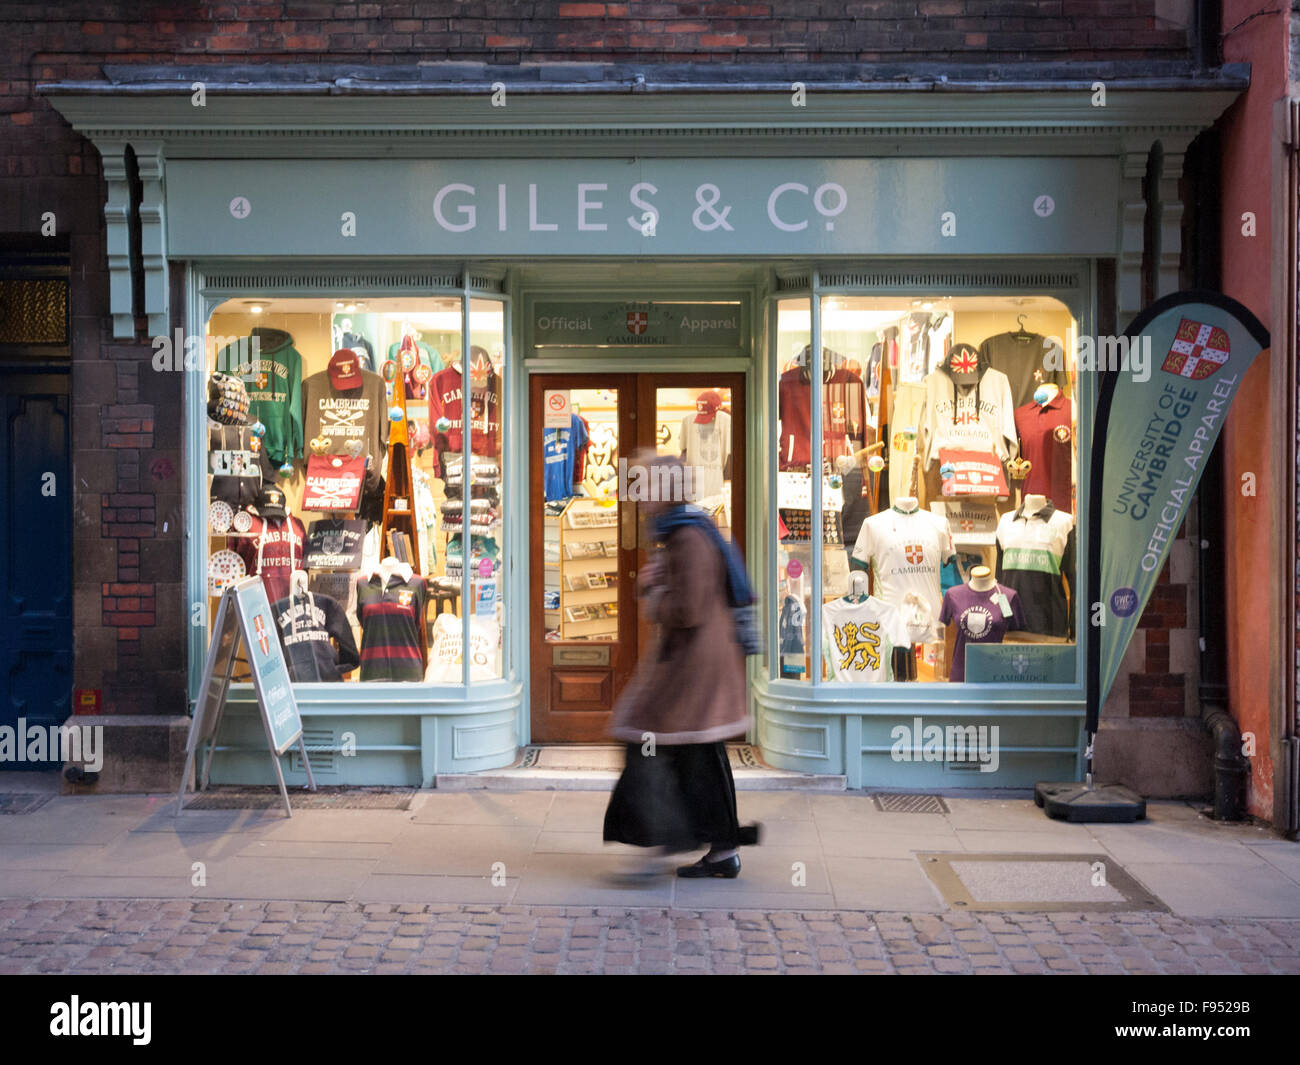 The shop window at Giles and Co University of Cambridge clothing store at dusk in Cambridge UK - Stock Image